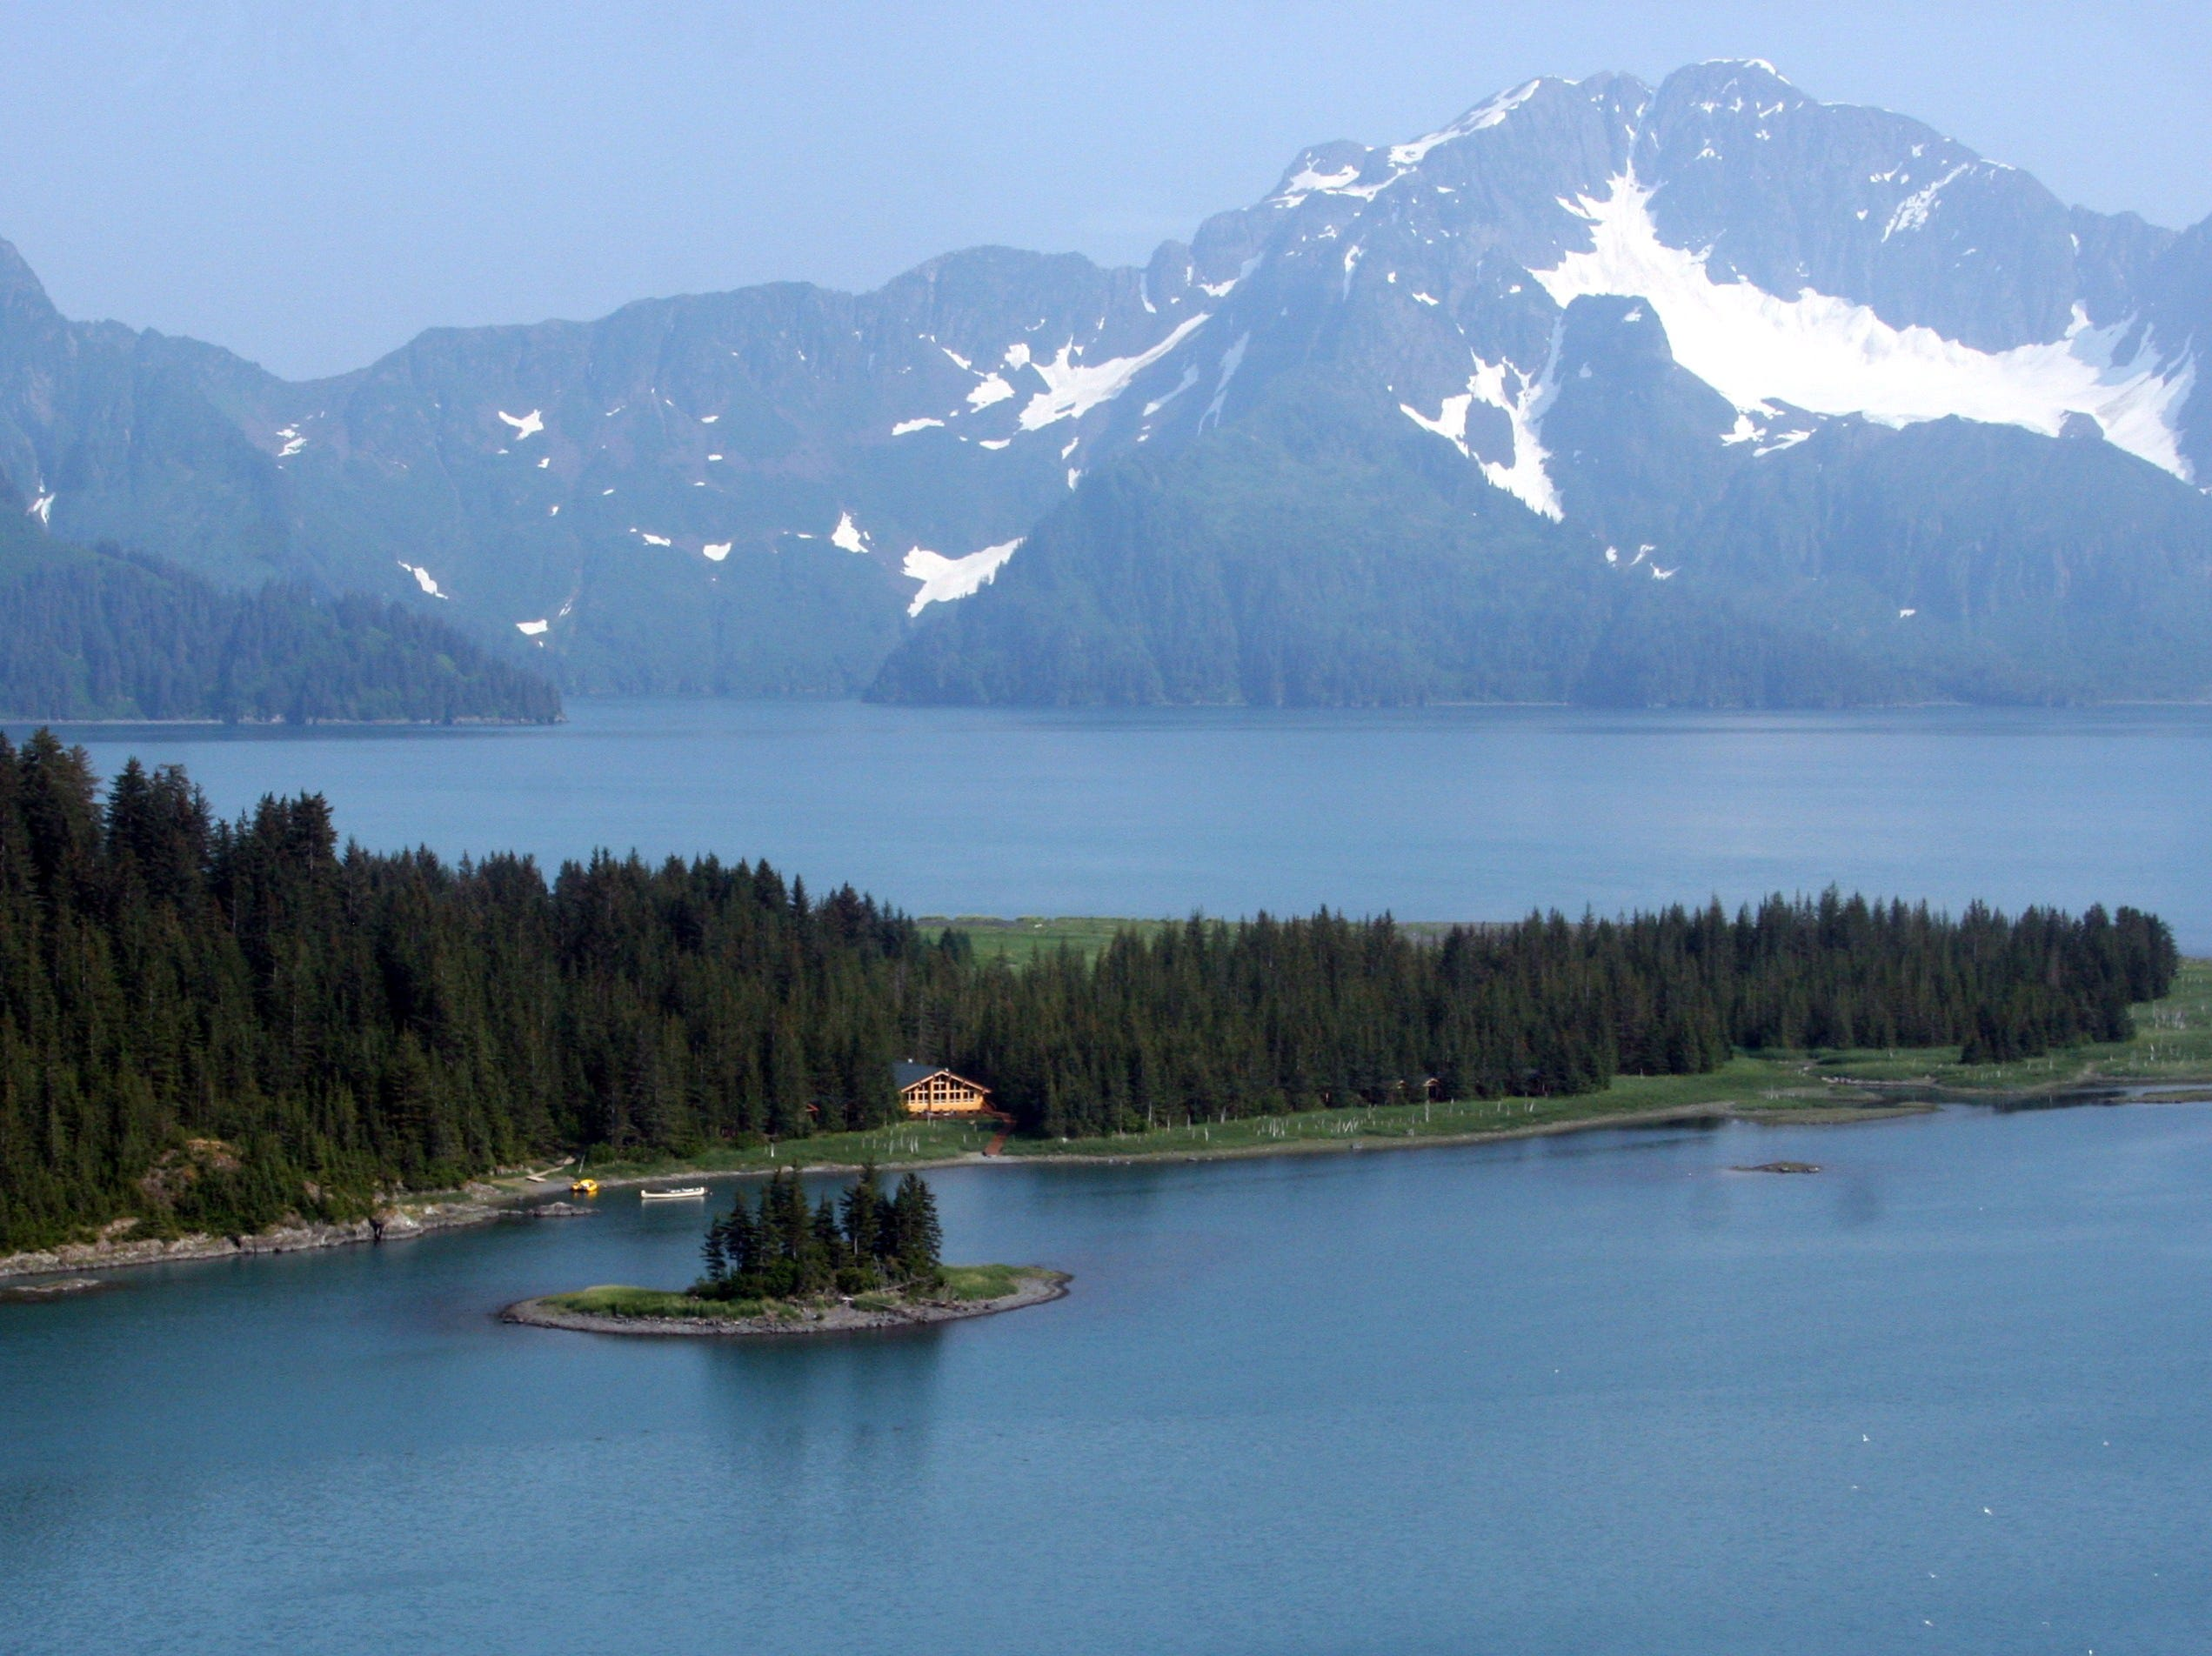 TEN GREAT ECO LODGES--  Alaska's Kenai Fjords Glacier Lodge is located in a national park and can only be reached by boat.   HANDOUT Credit: Alaska Wildland Adventures  [Via MerlinFTP Drop]